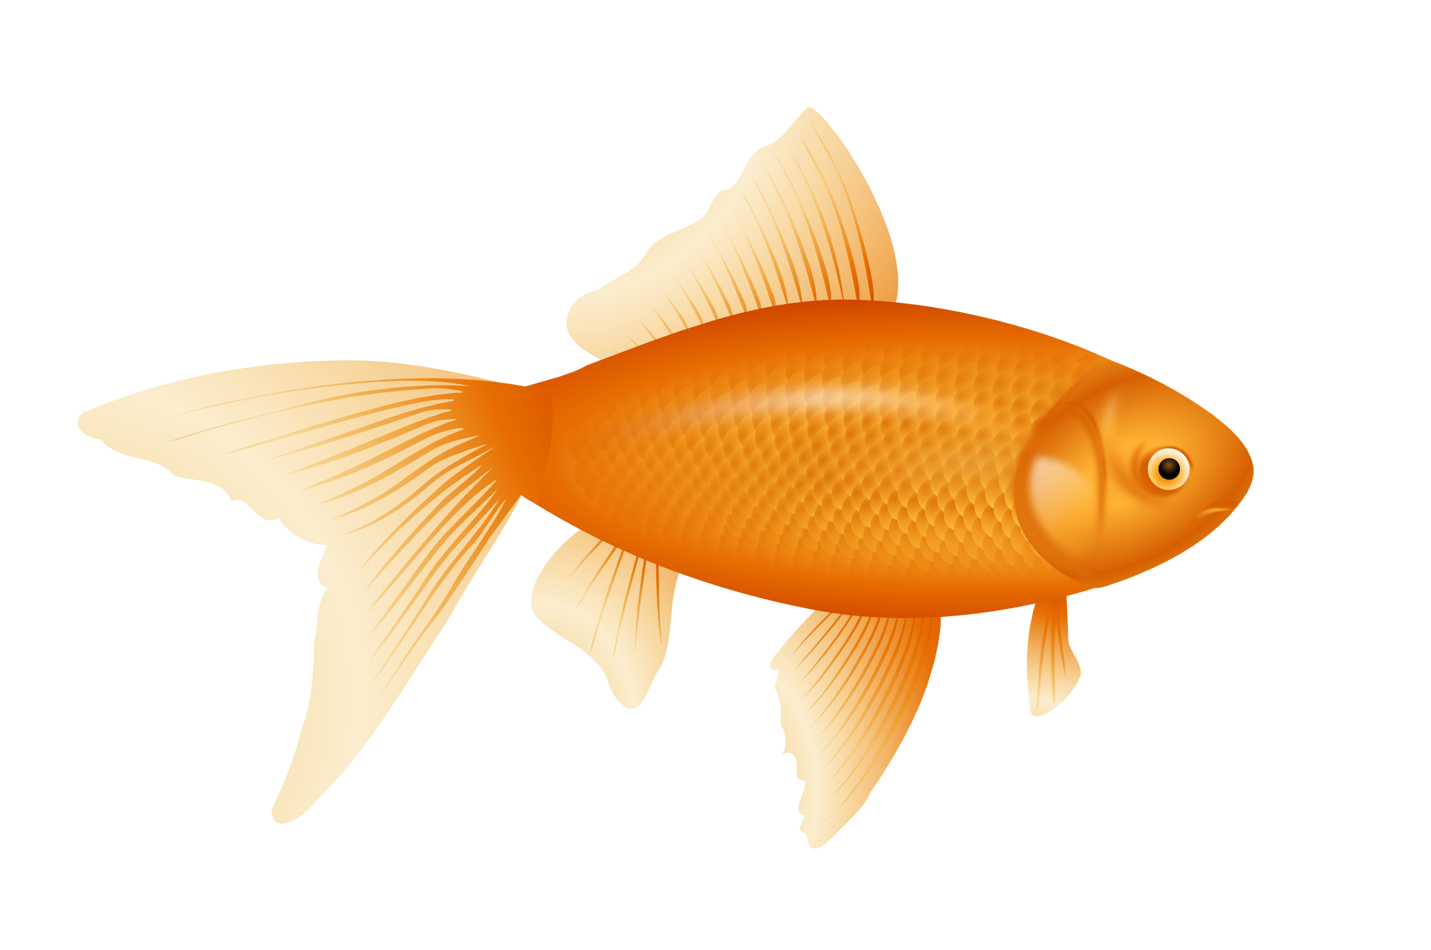 Fish clipart png orange stock Fish Clipart PNG Transparent Images free download stock